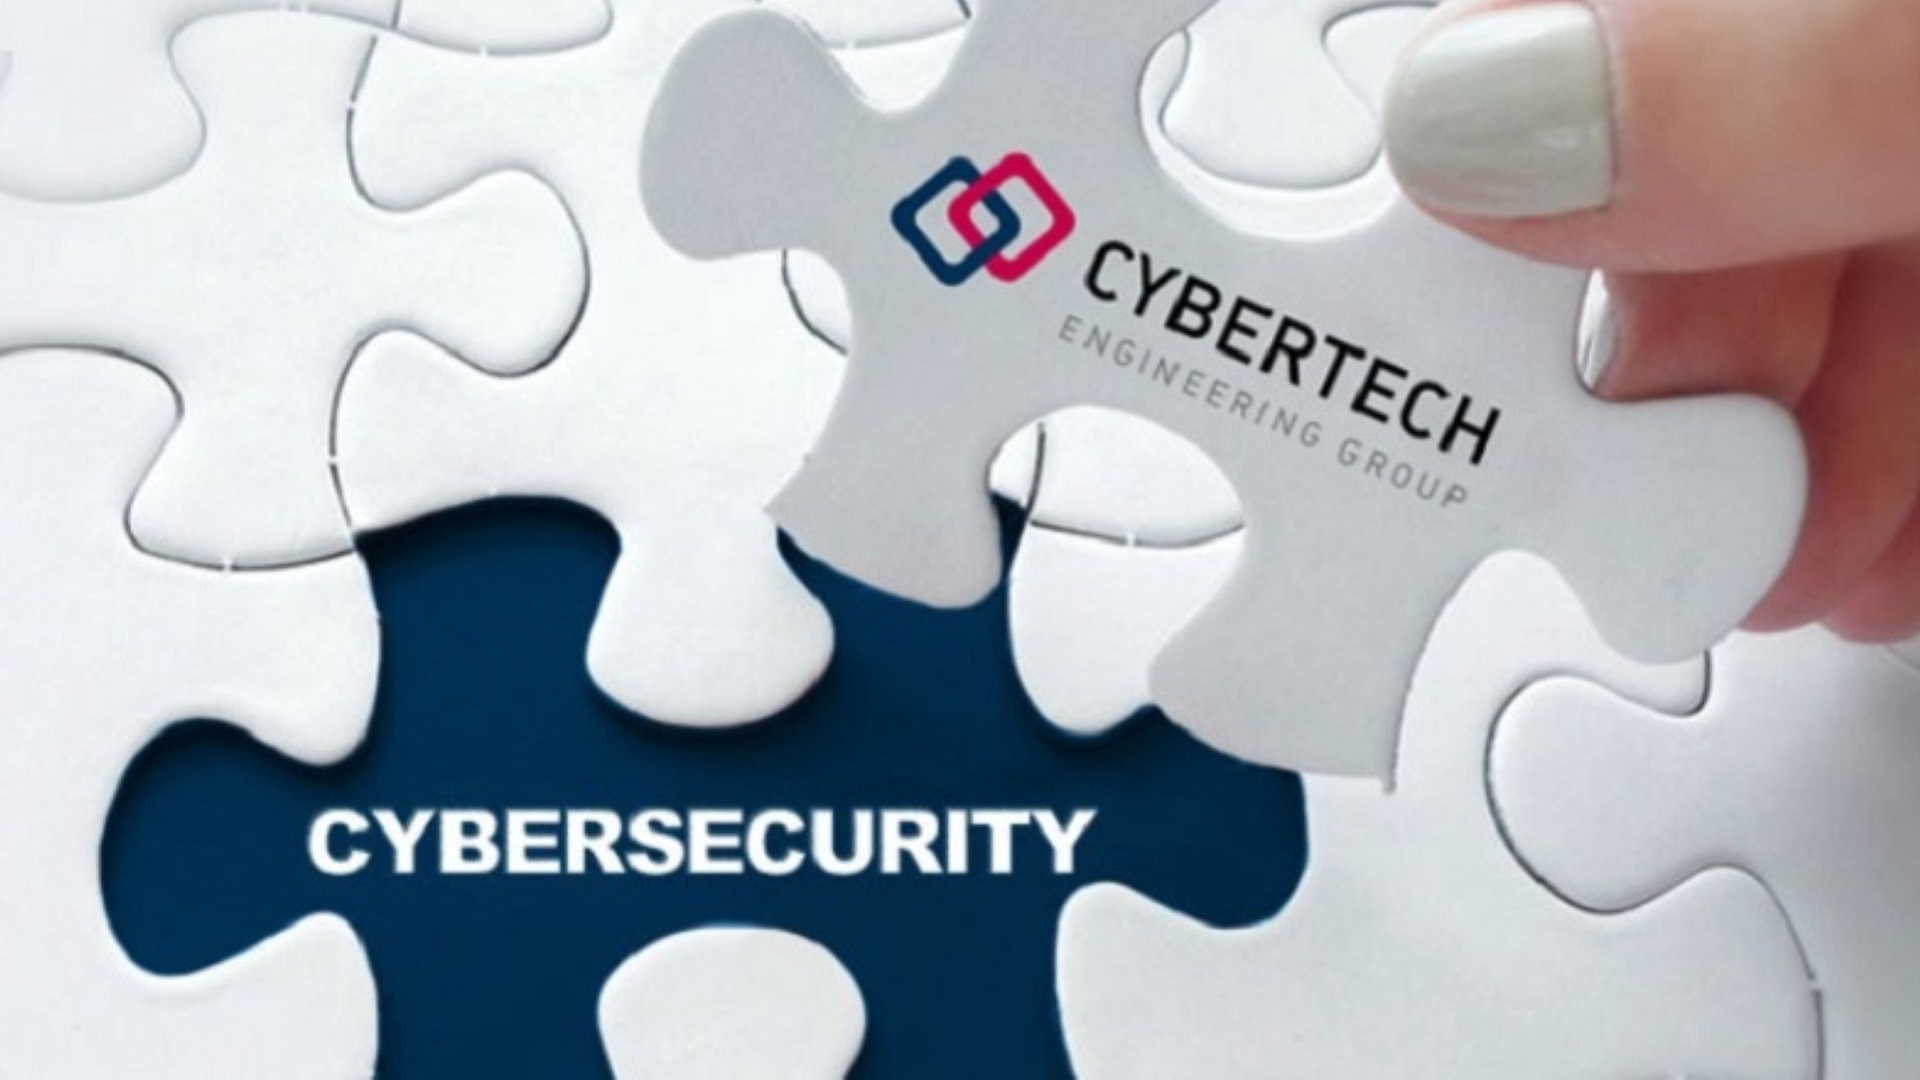 Cybertech (Engineering Group) protects hospitals